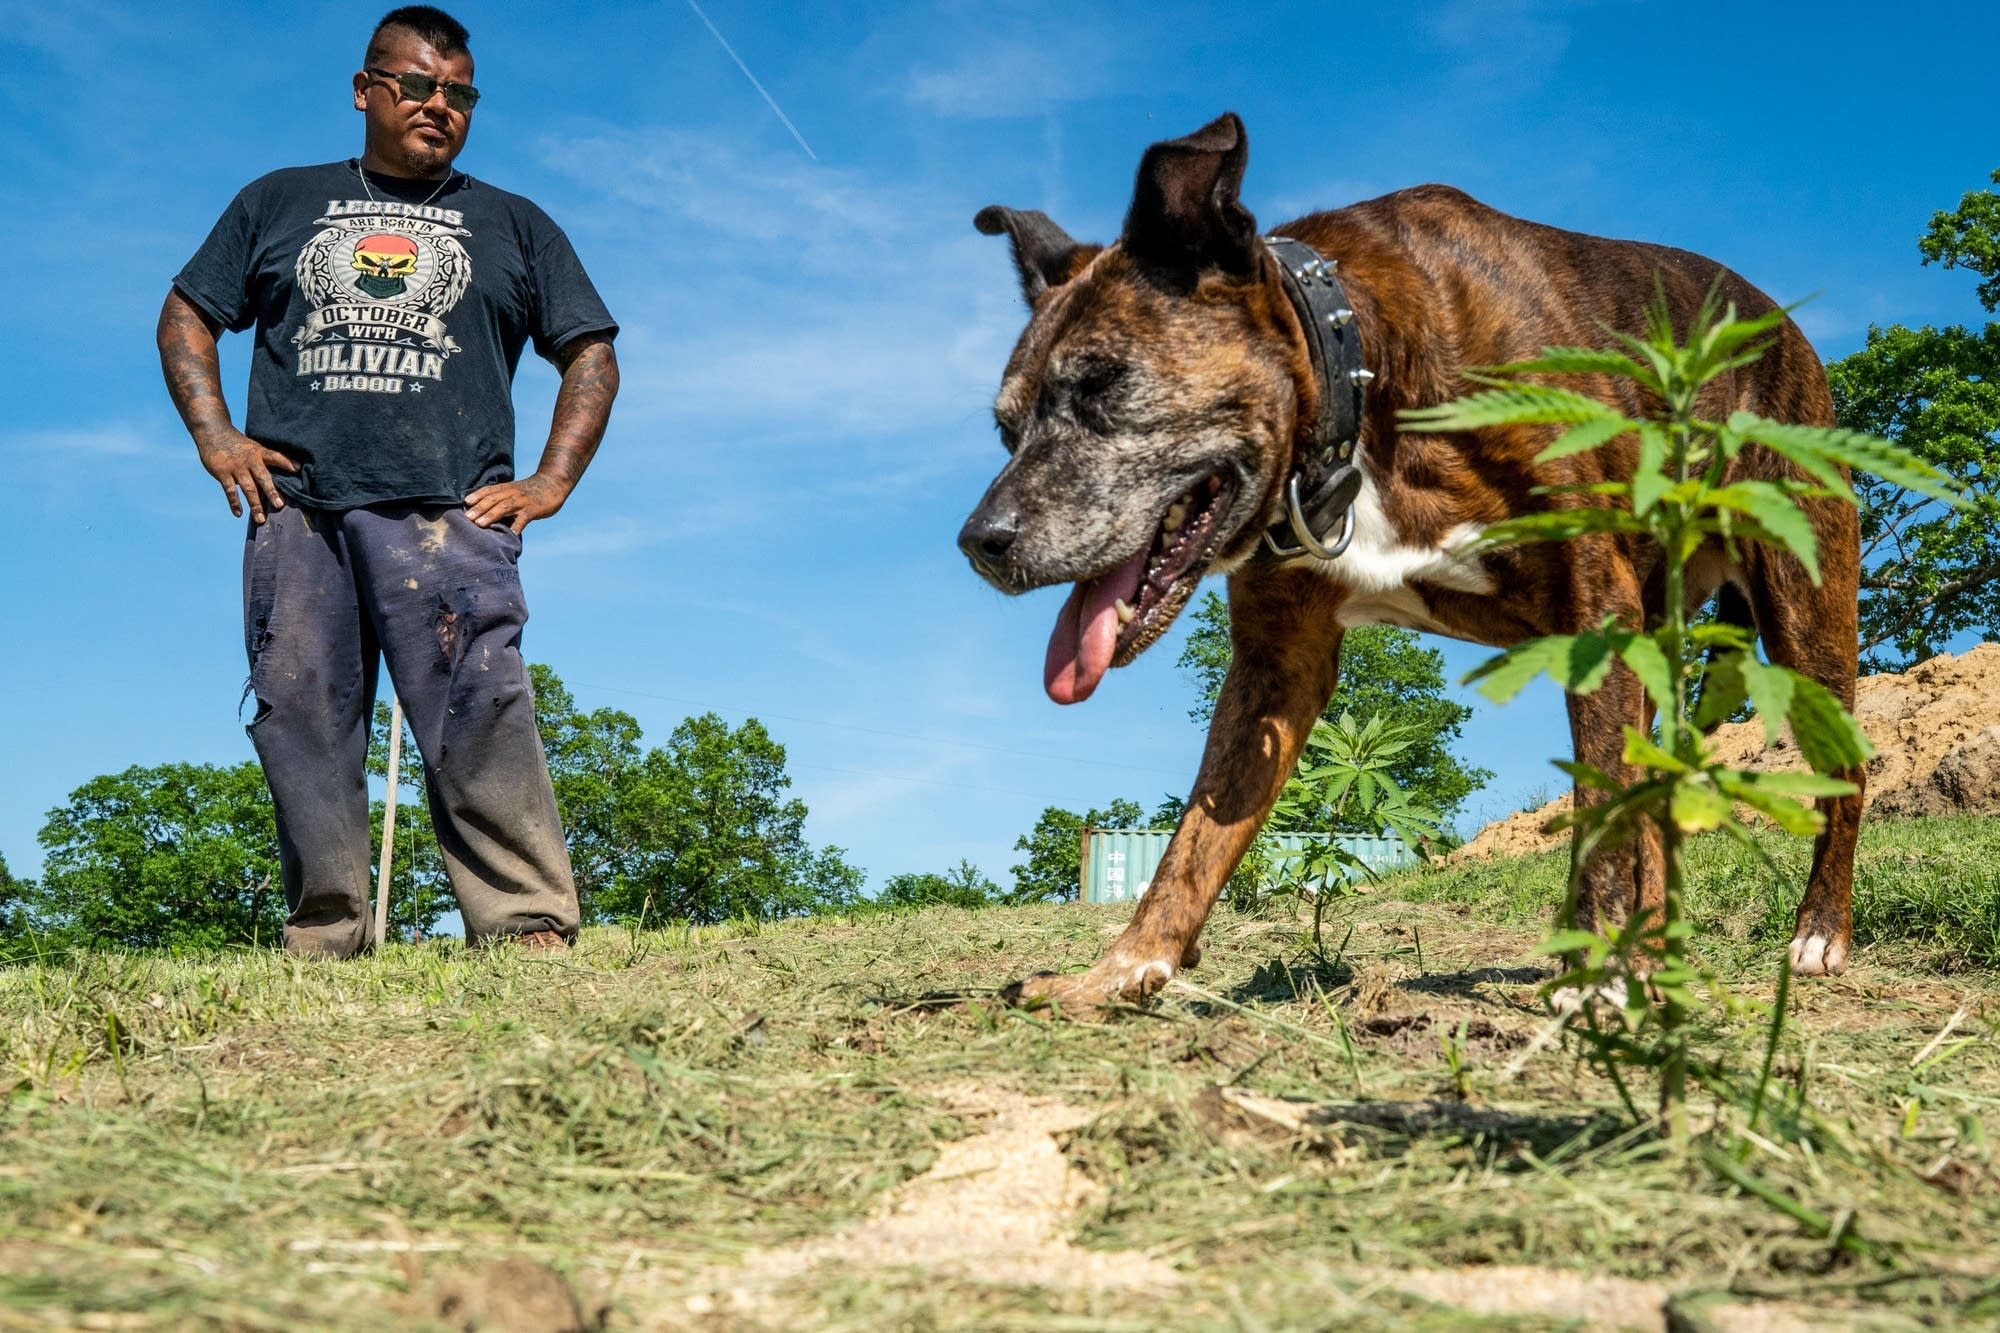 Luis Miguel Hummel walks his fields of hemp plants with one of his 4 dogs.